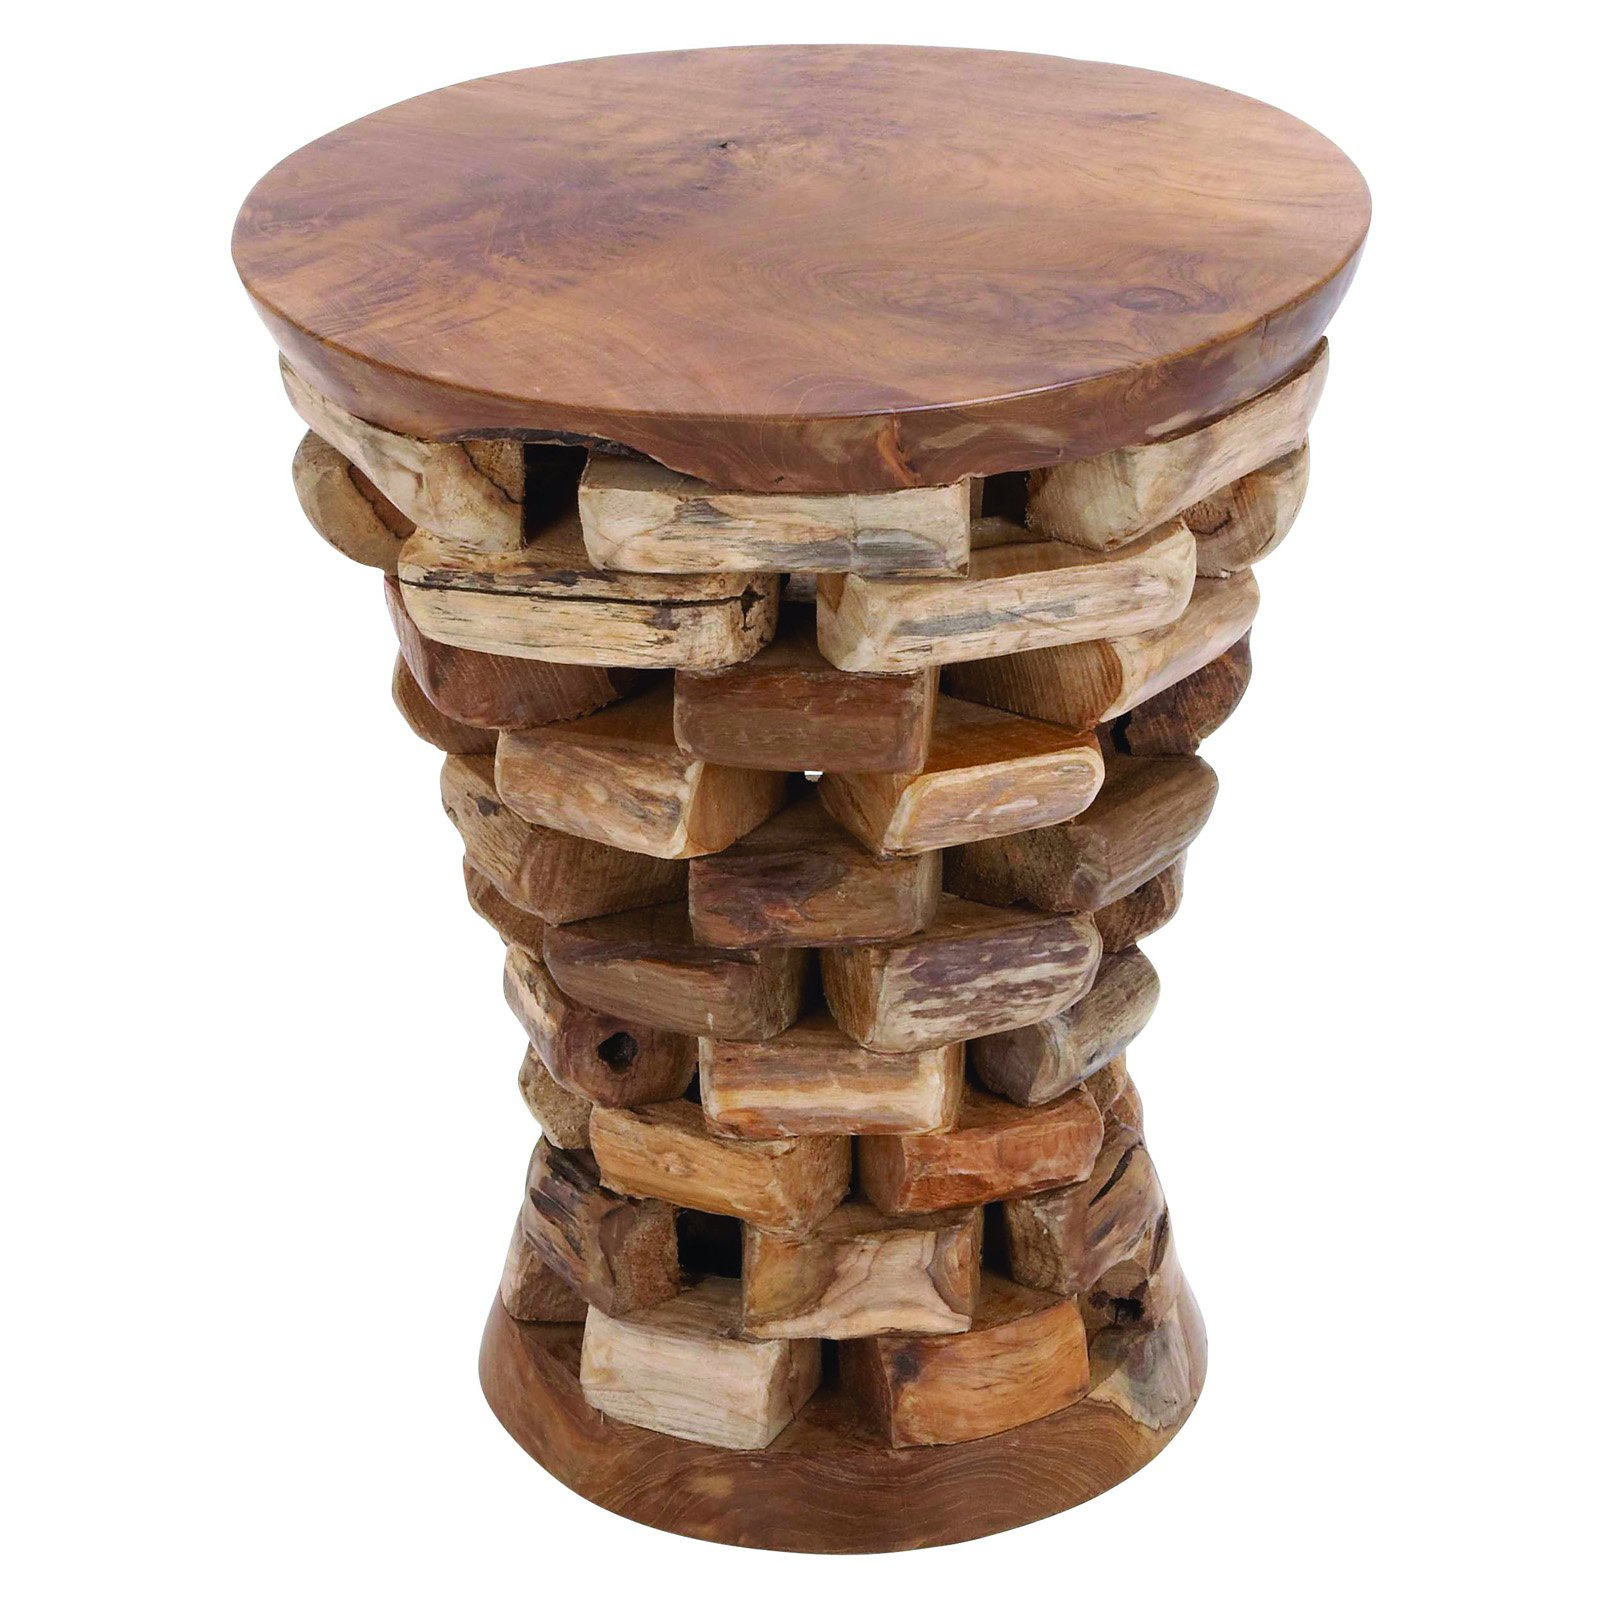 natural wood end table top benzara round shaped teak wooden accent live edge brown lap desk outdoor coffee plans chairs for living room mid century legs pier candles pink delta